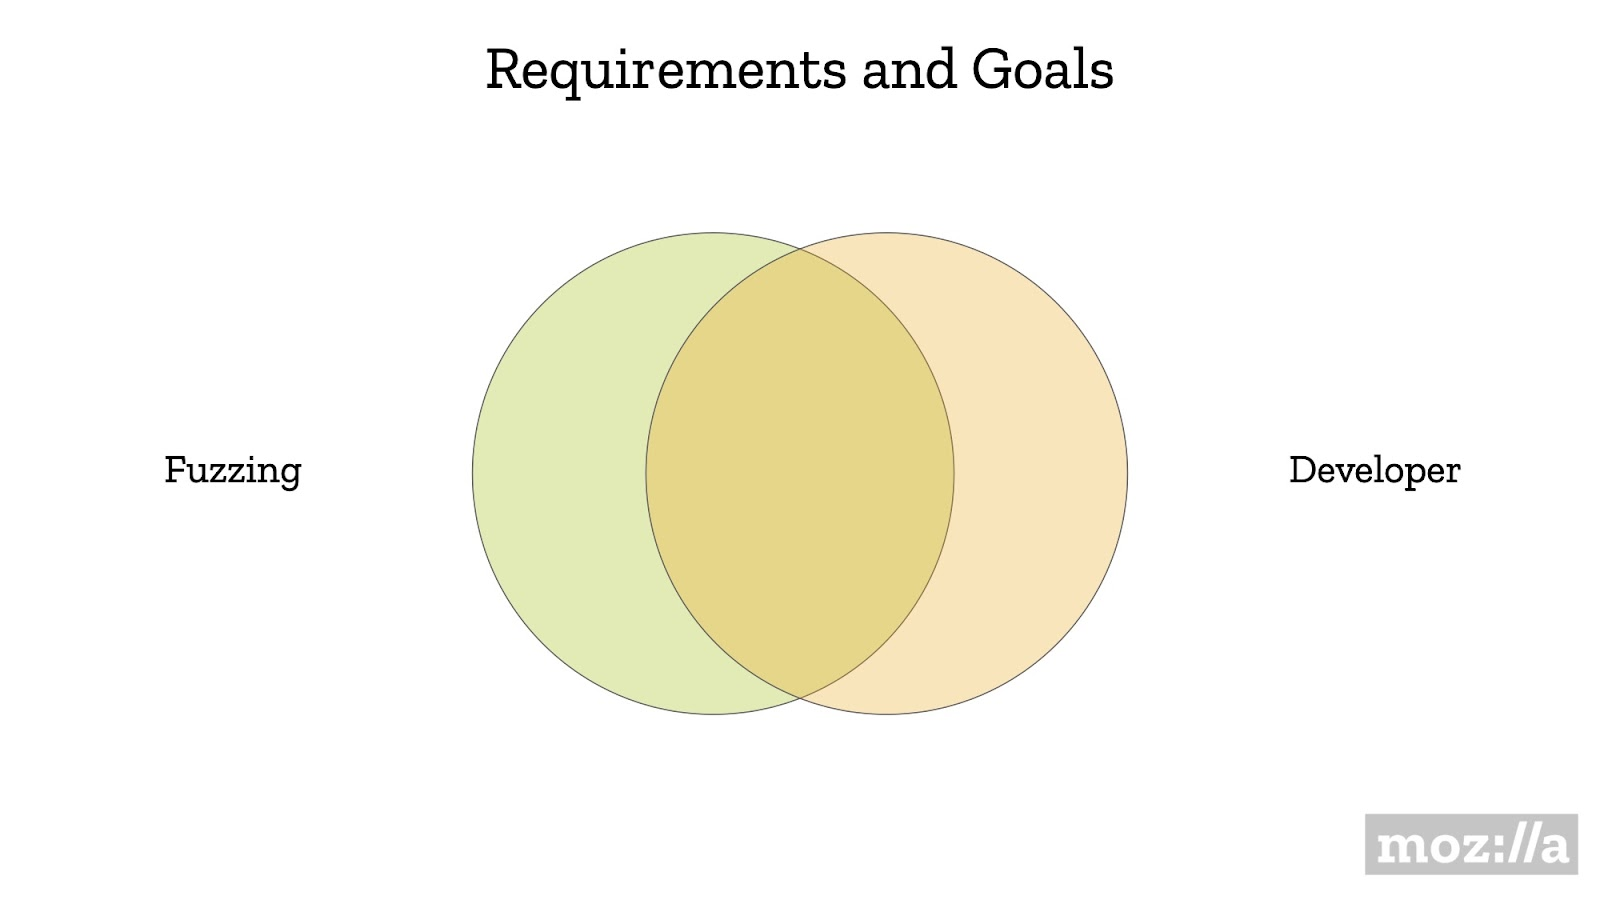 Requirements and Goals